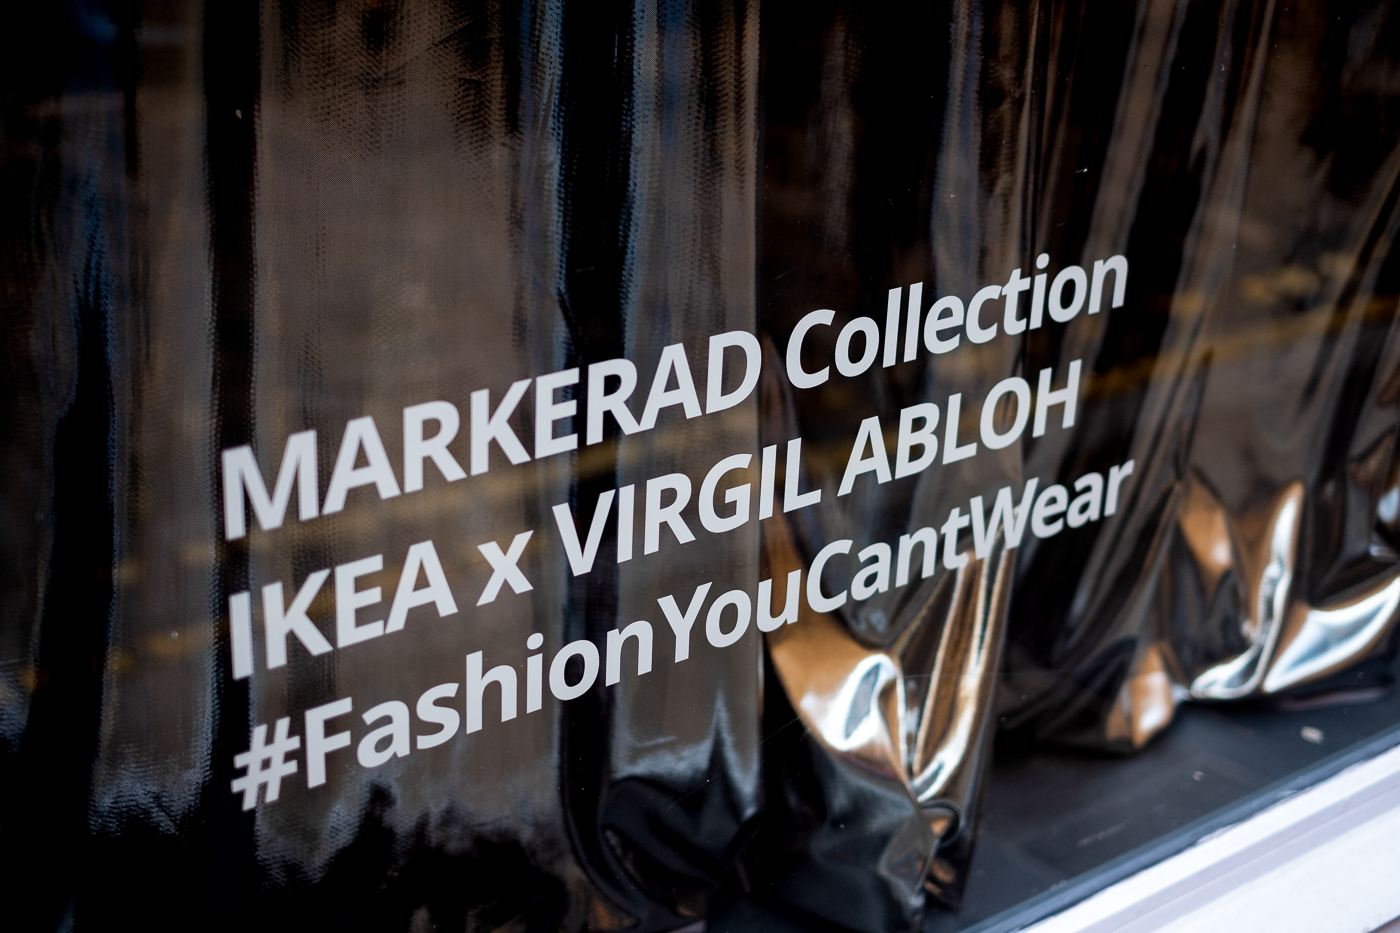 Virgil Abloh, IKEA, pop up, how to build a pop up, London pop up, things to see in London, short-term retail,